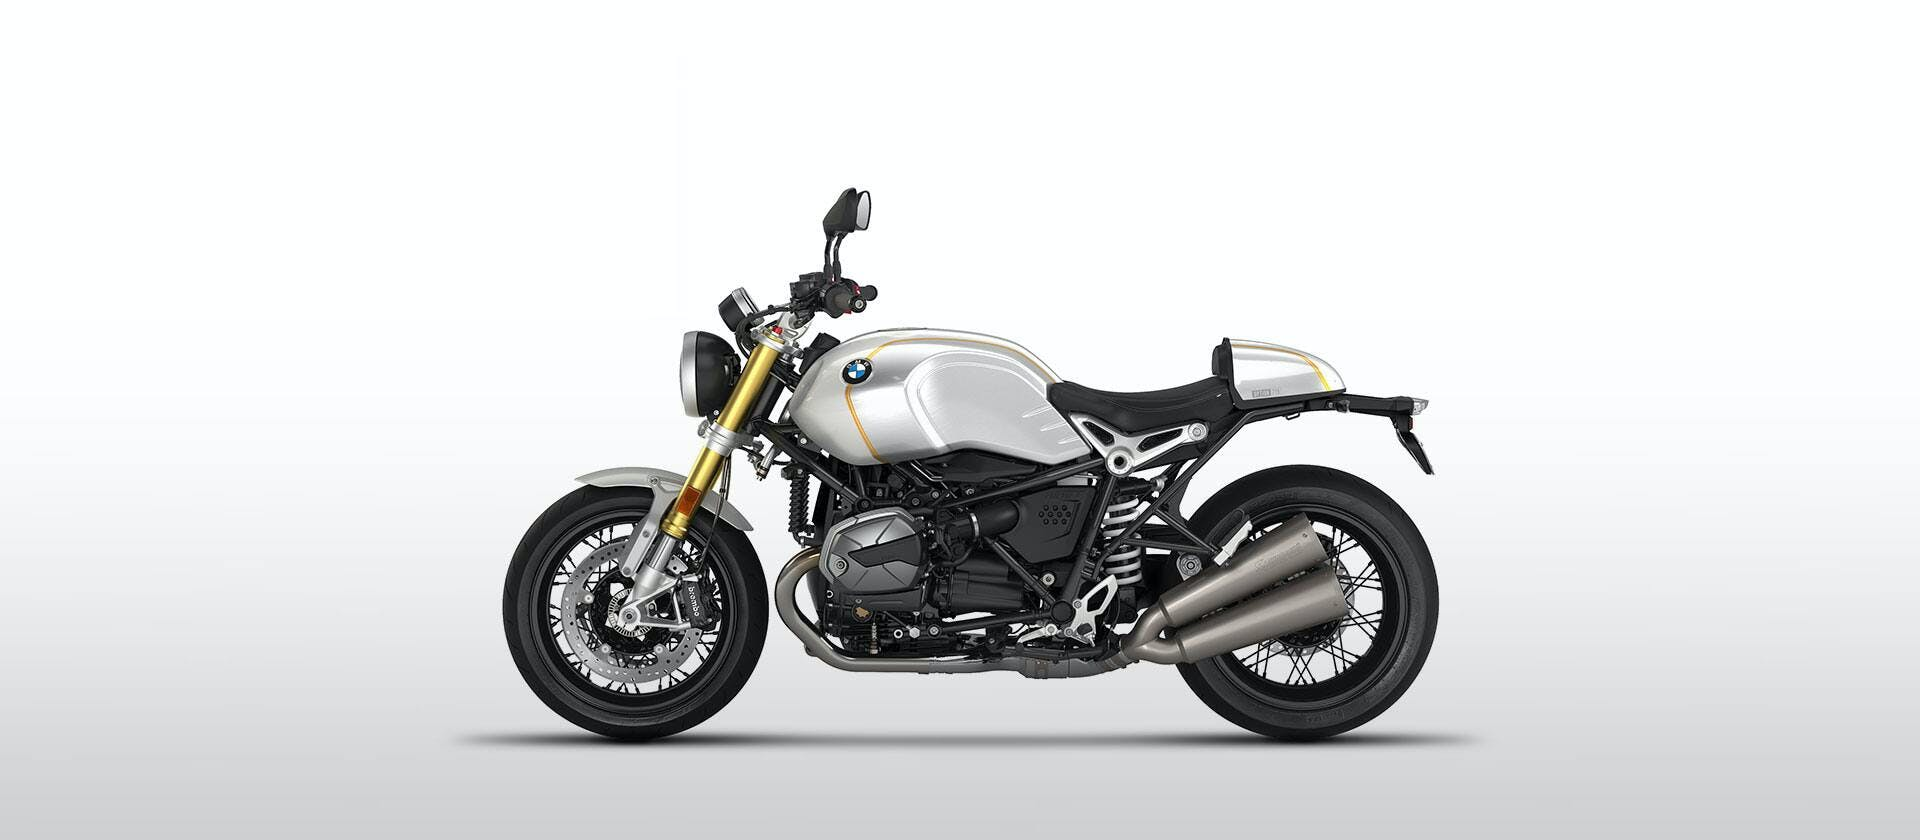 BMW R NINET in Option 719 Mineral White Metallic/Sunset Yellow colour